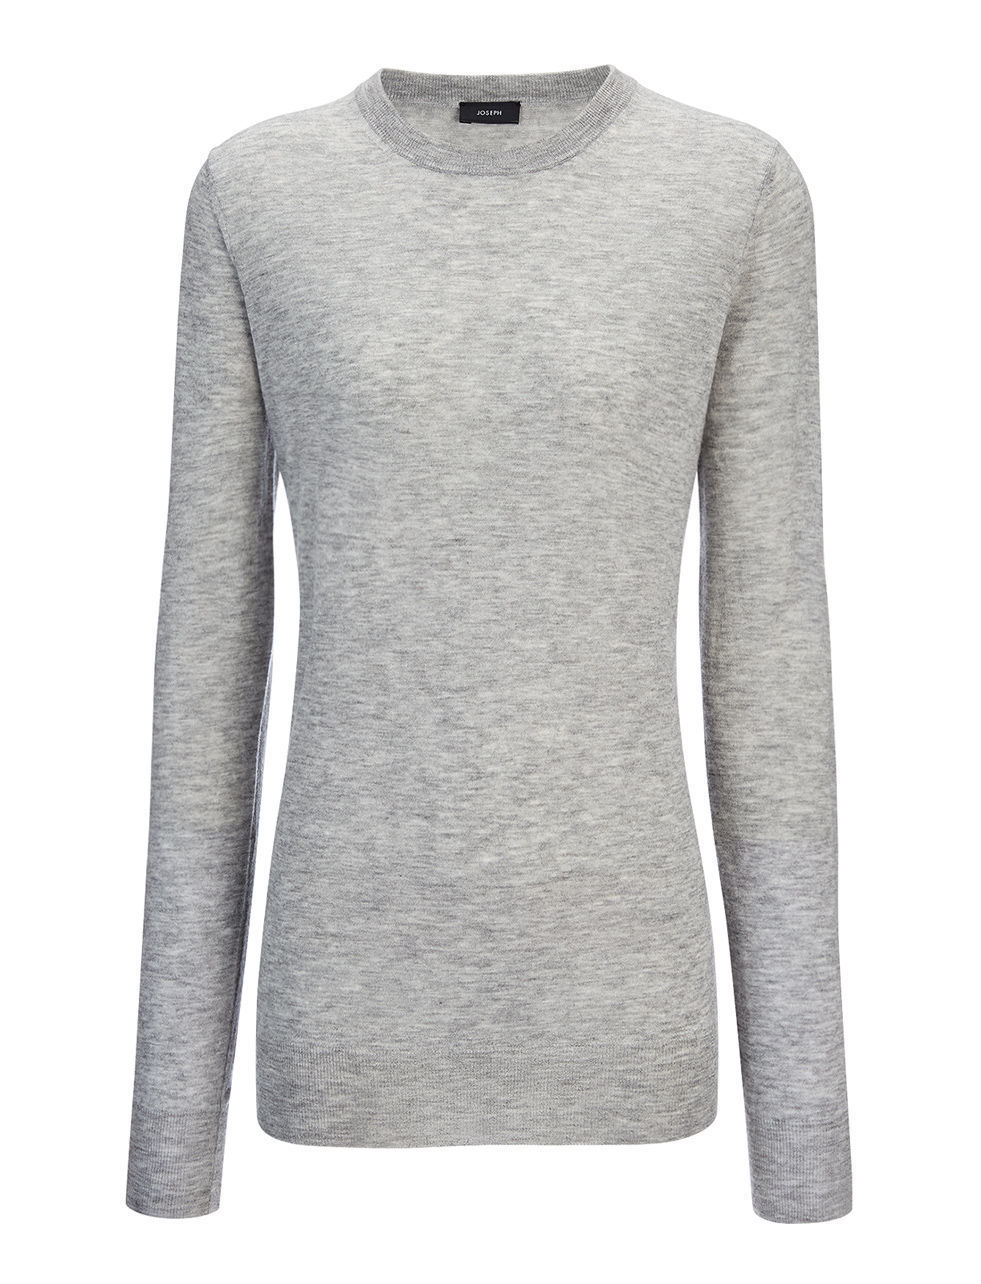 Cashair Top In Marble - pattern: plain; neckline: high neck; hip detail: fitted at hip; predominant colour: light grey; occasions: casual; length: standard; style: top; fit: body skimming; fibres: cashmere - 100%; sleeve length: long sleeve; sleeve style: standard; texture group: knits/crochet; pattern type: knitted - fine stitch; season: s/s 2016